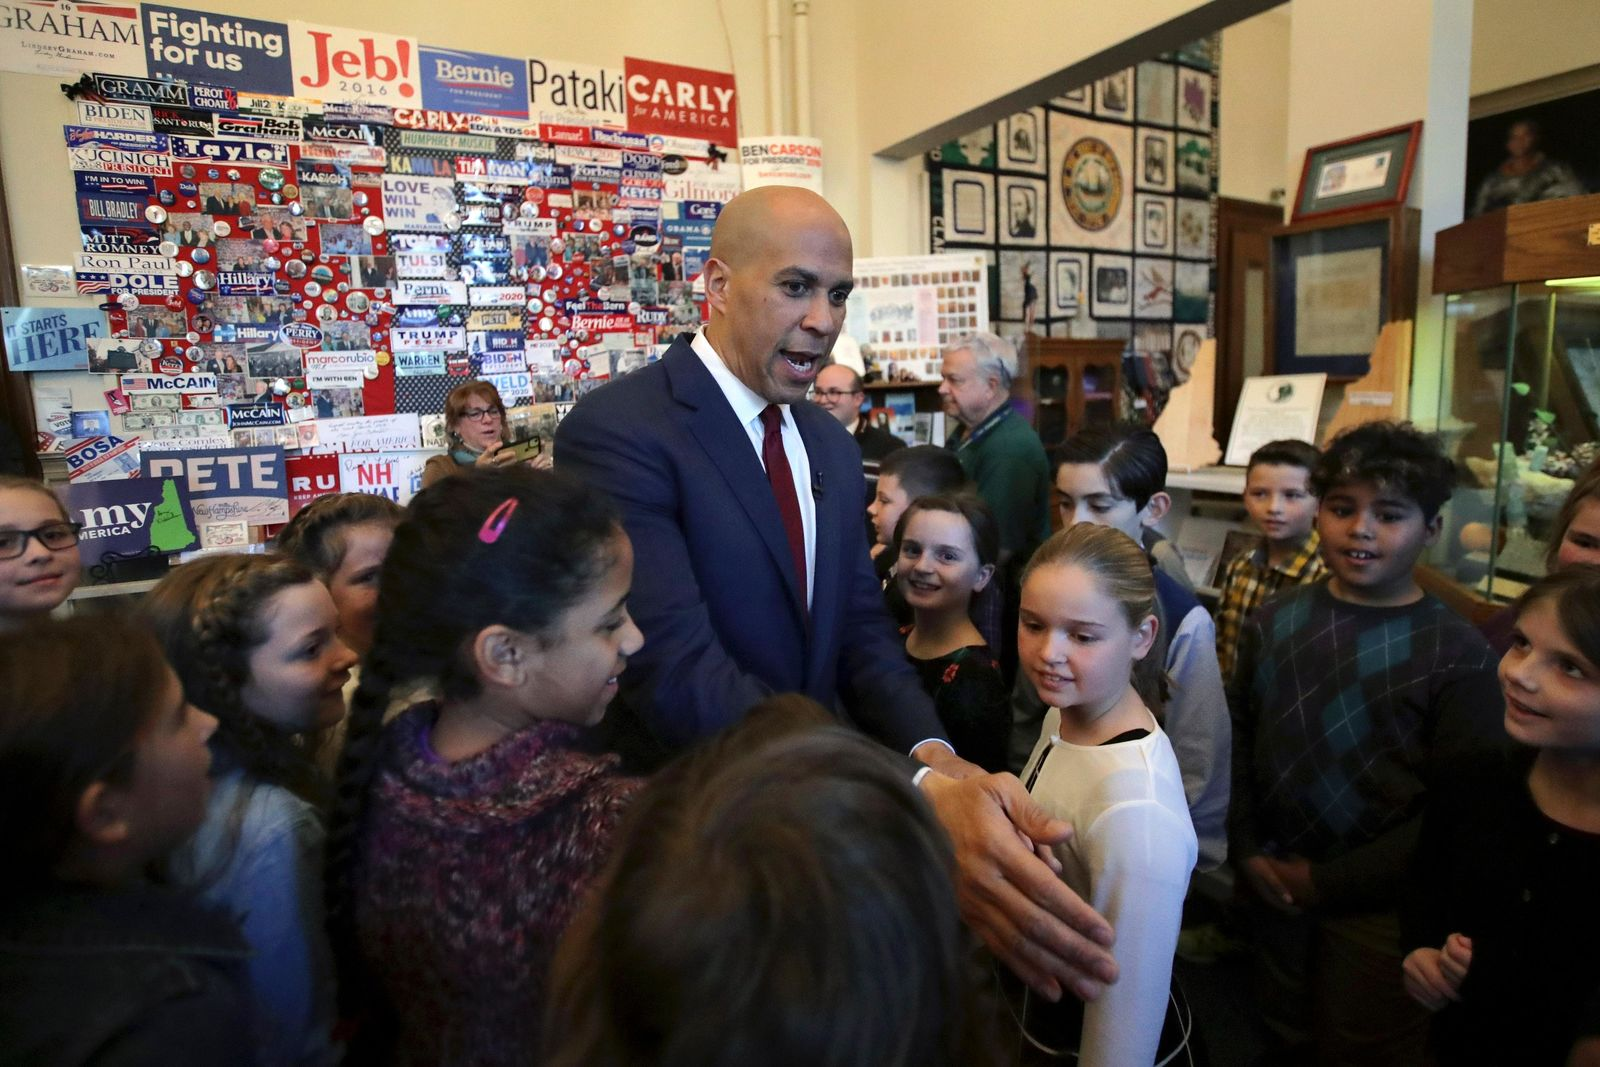 Democratic presidential candidate Sen. Cory Booker, D-N.J., passes by students from Bow Elementary School who were on a field trip to the State House as he departs after filing to have his name listed on the New Hampshire primary ballot, Friday, Nov. 15, 2019, in Concord, N.H. (AP Photo/Charles Krupa)